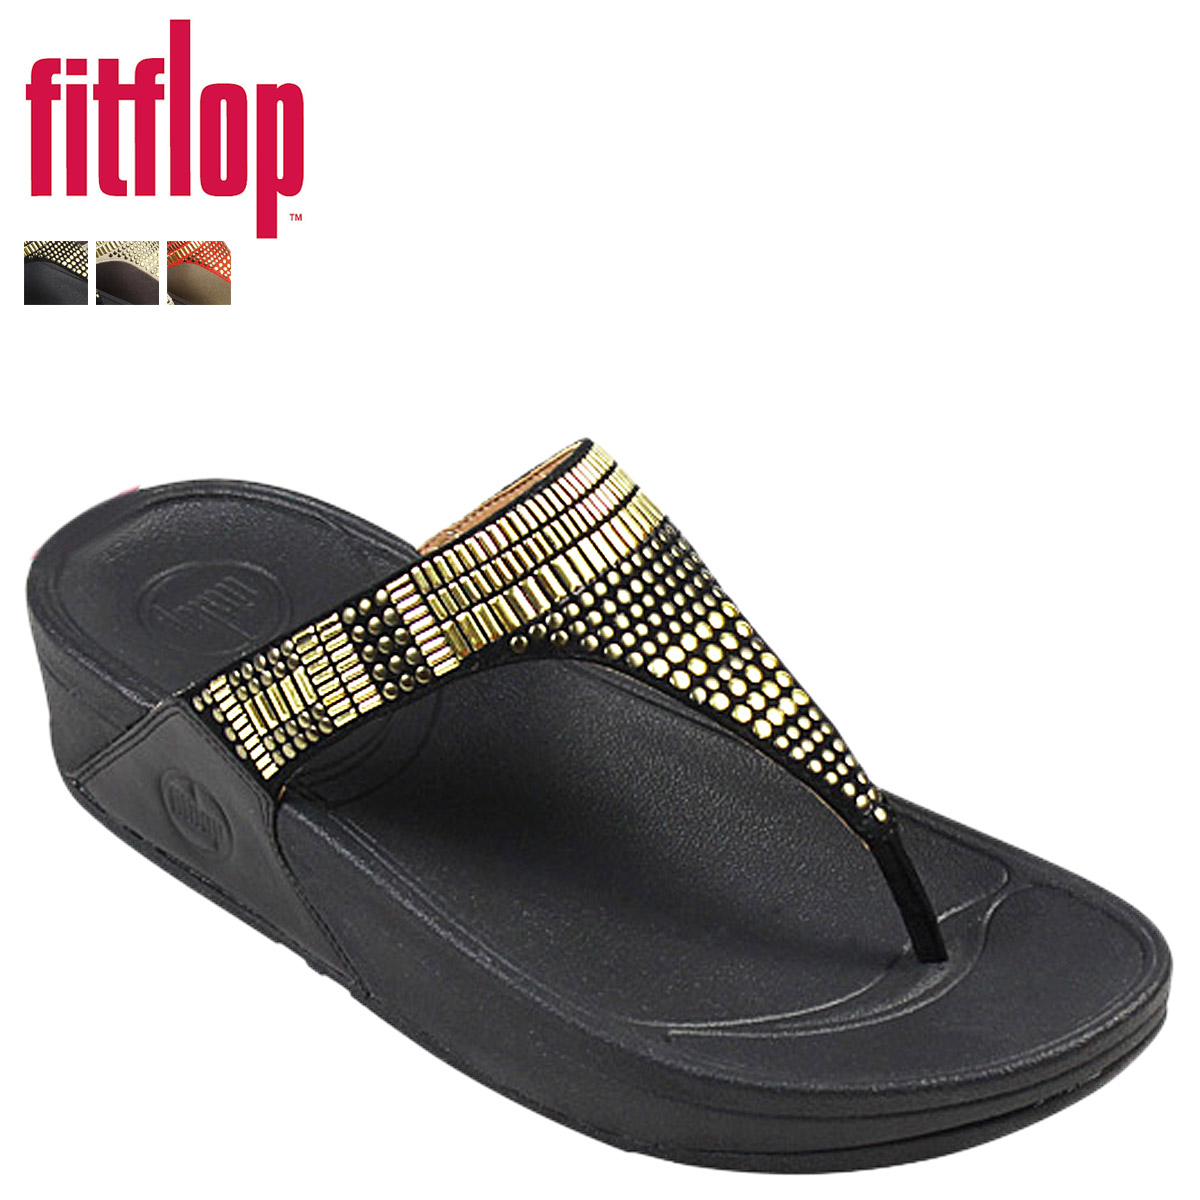 aa5fc3131a7 Fit flops FitFlop women s Aztec Chad sandal AZTEK CHADA leather thong  Sandals 2014 years new 359 3 color  8   early new in stock   regular